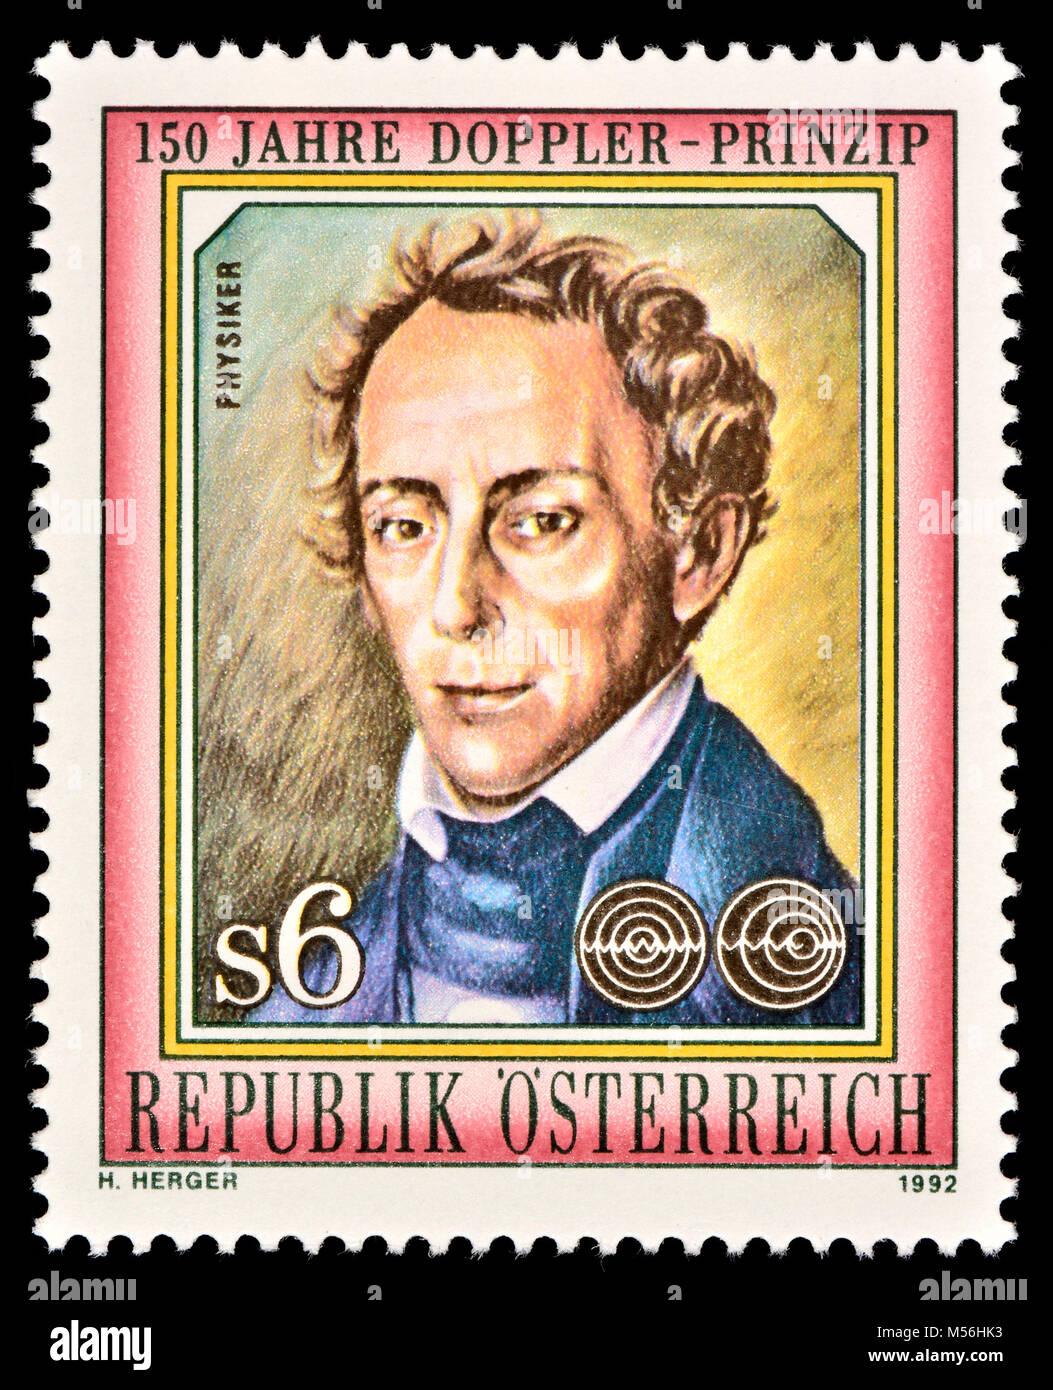 Austrian postage stamp (1992) : Christian Andreas Doppler (1803 – 1853) Austrian mathematician and physicist. He - Stock Image